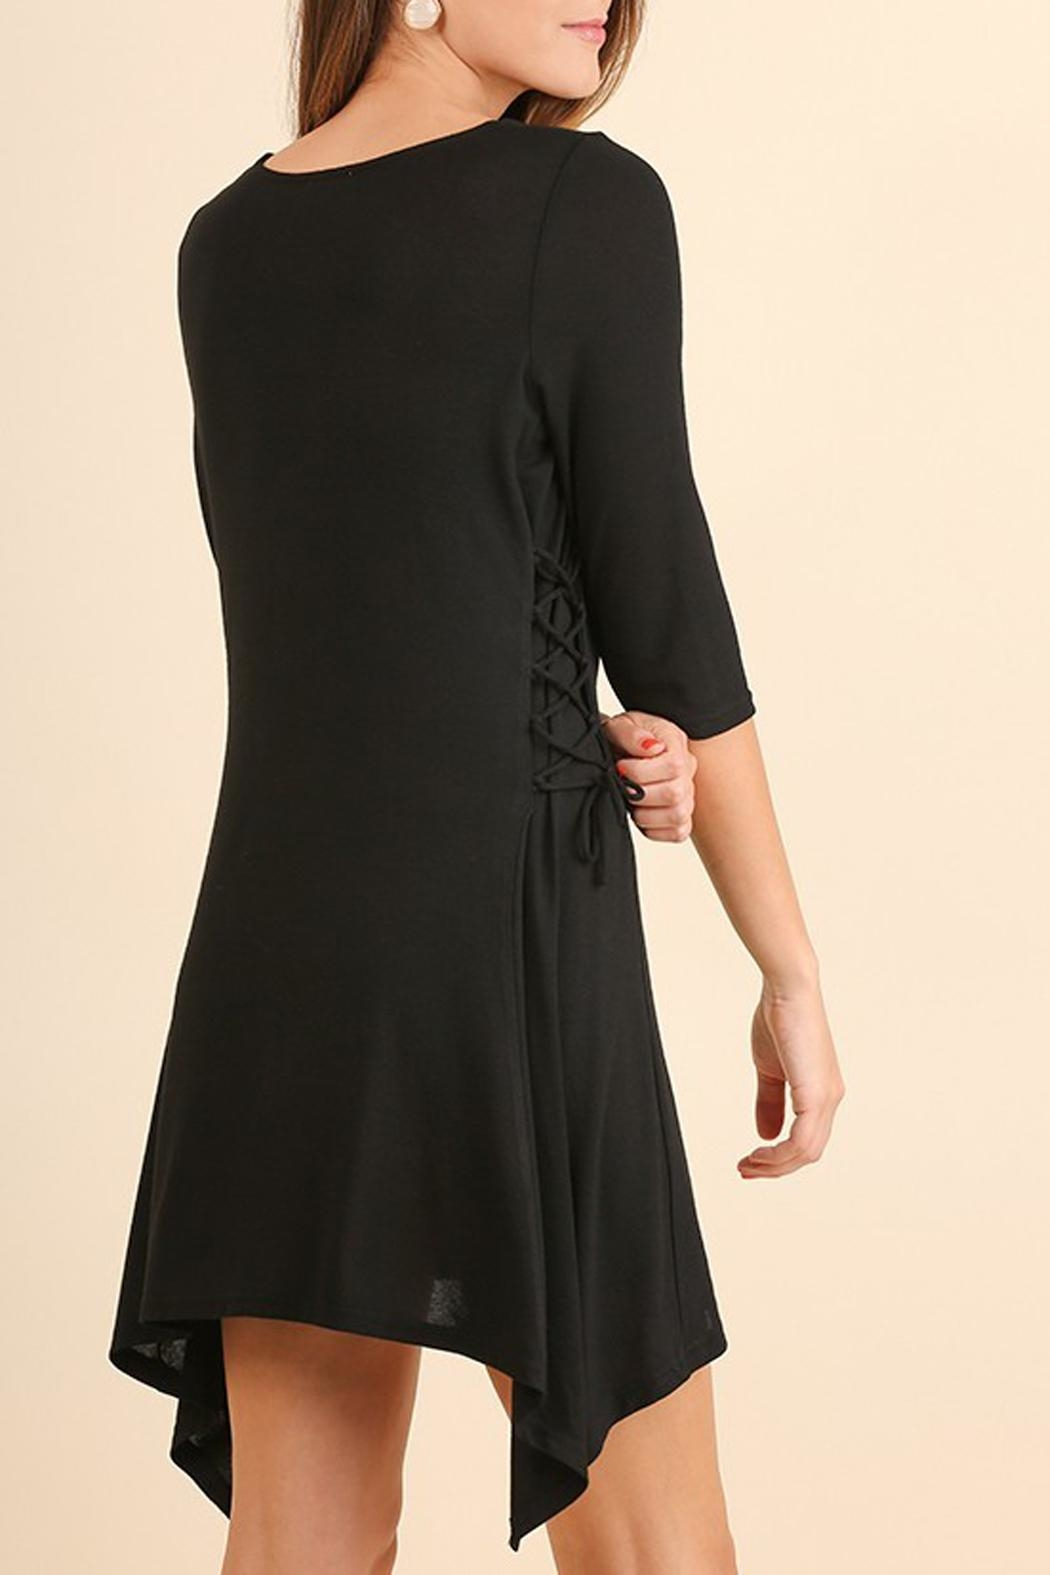 Umgee USA Black Criss-Cross-Tie Tunic - Front Full Image